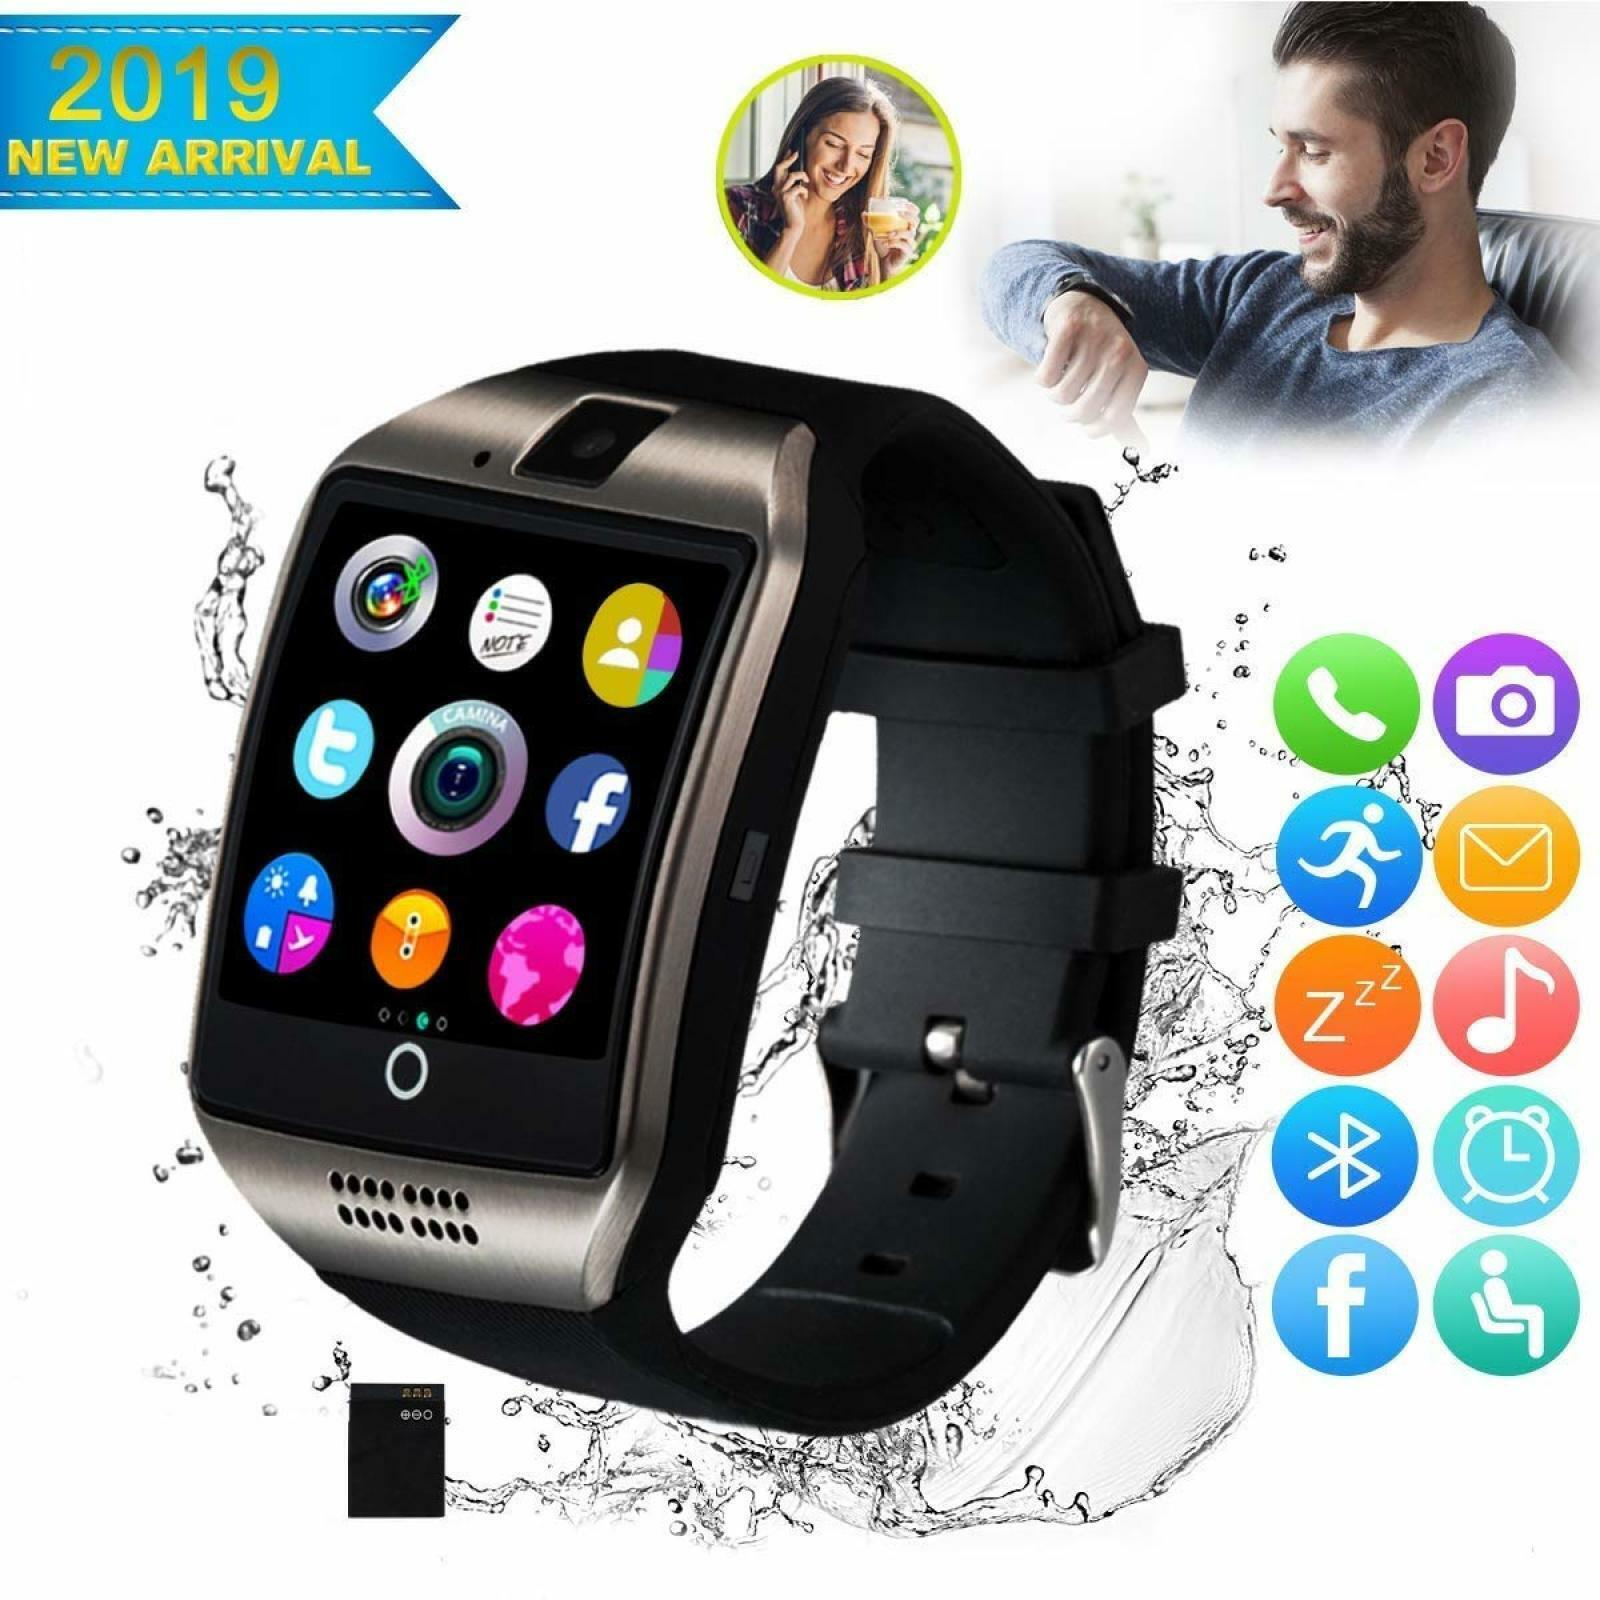 Smart Watch For Motorola G7 Plus Play G5 G6 Moto One X4 Z3 Z2 G8 Power And More